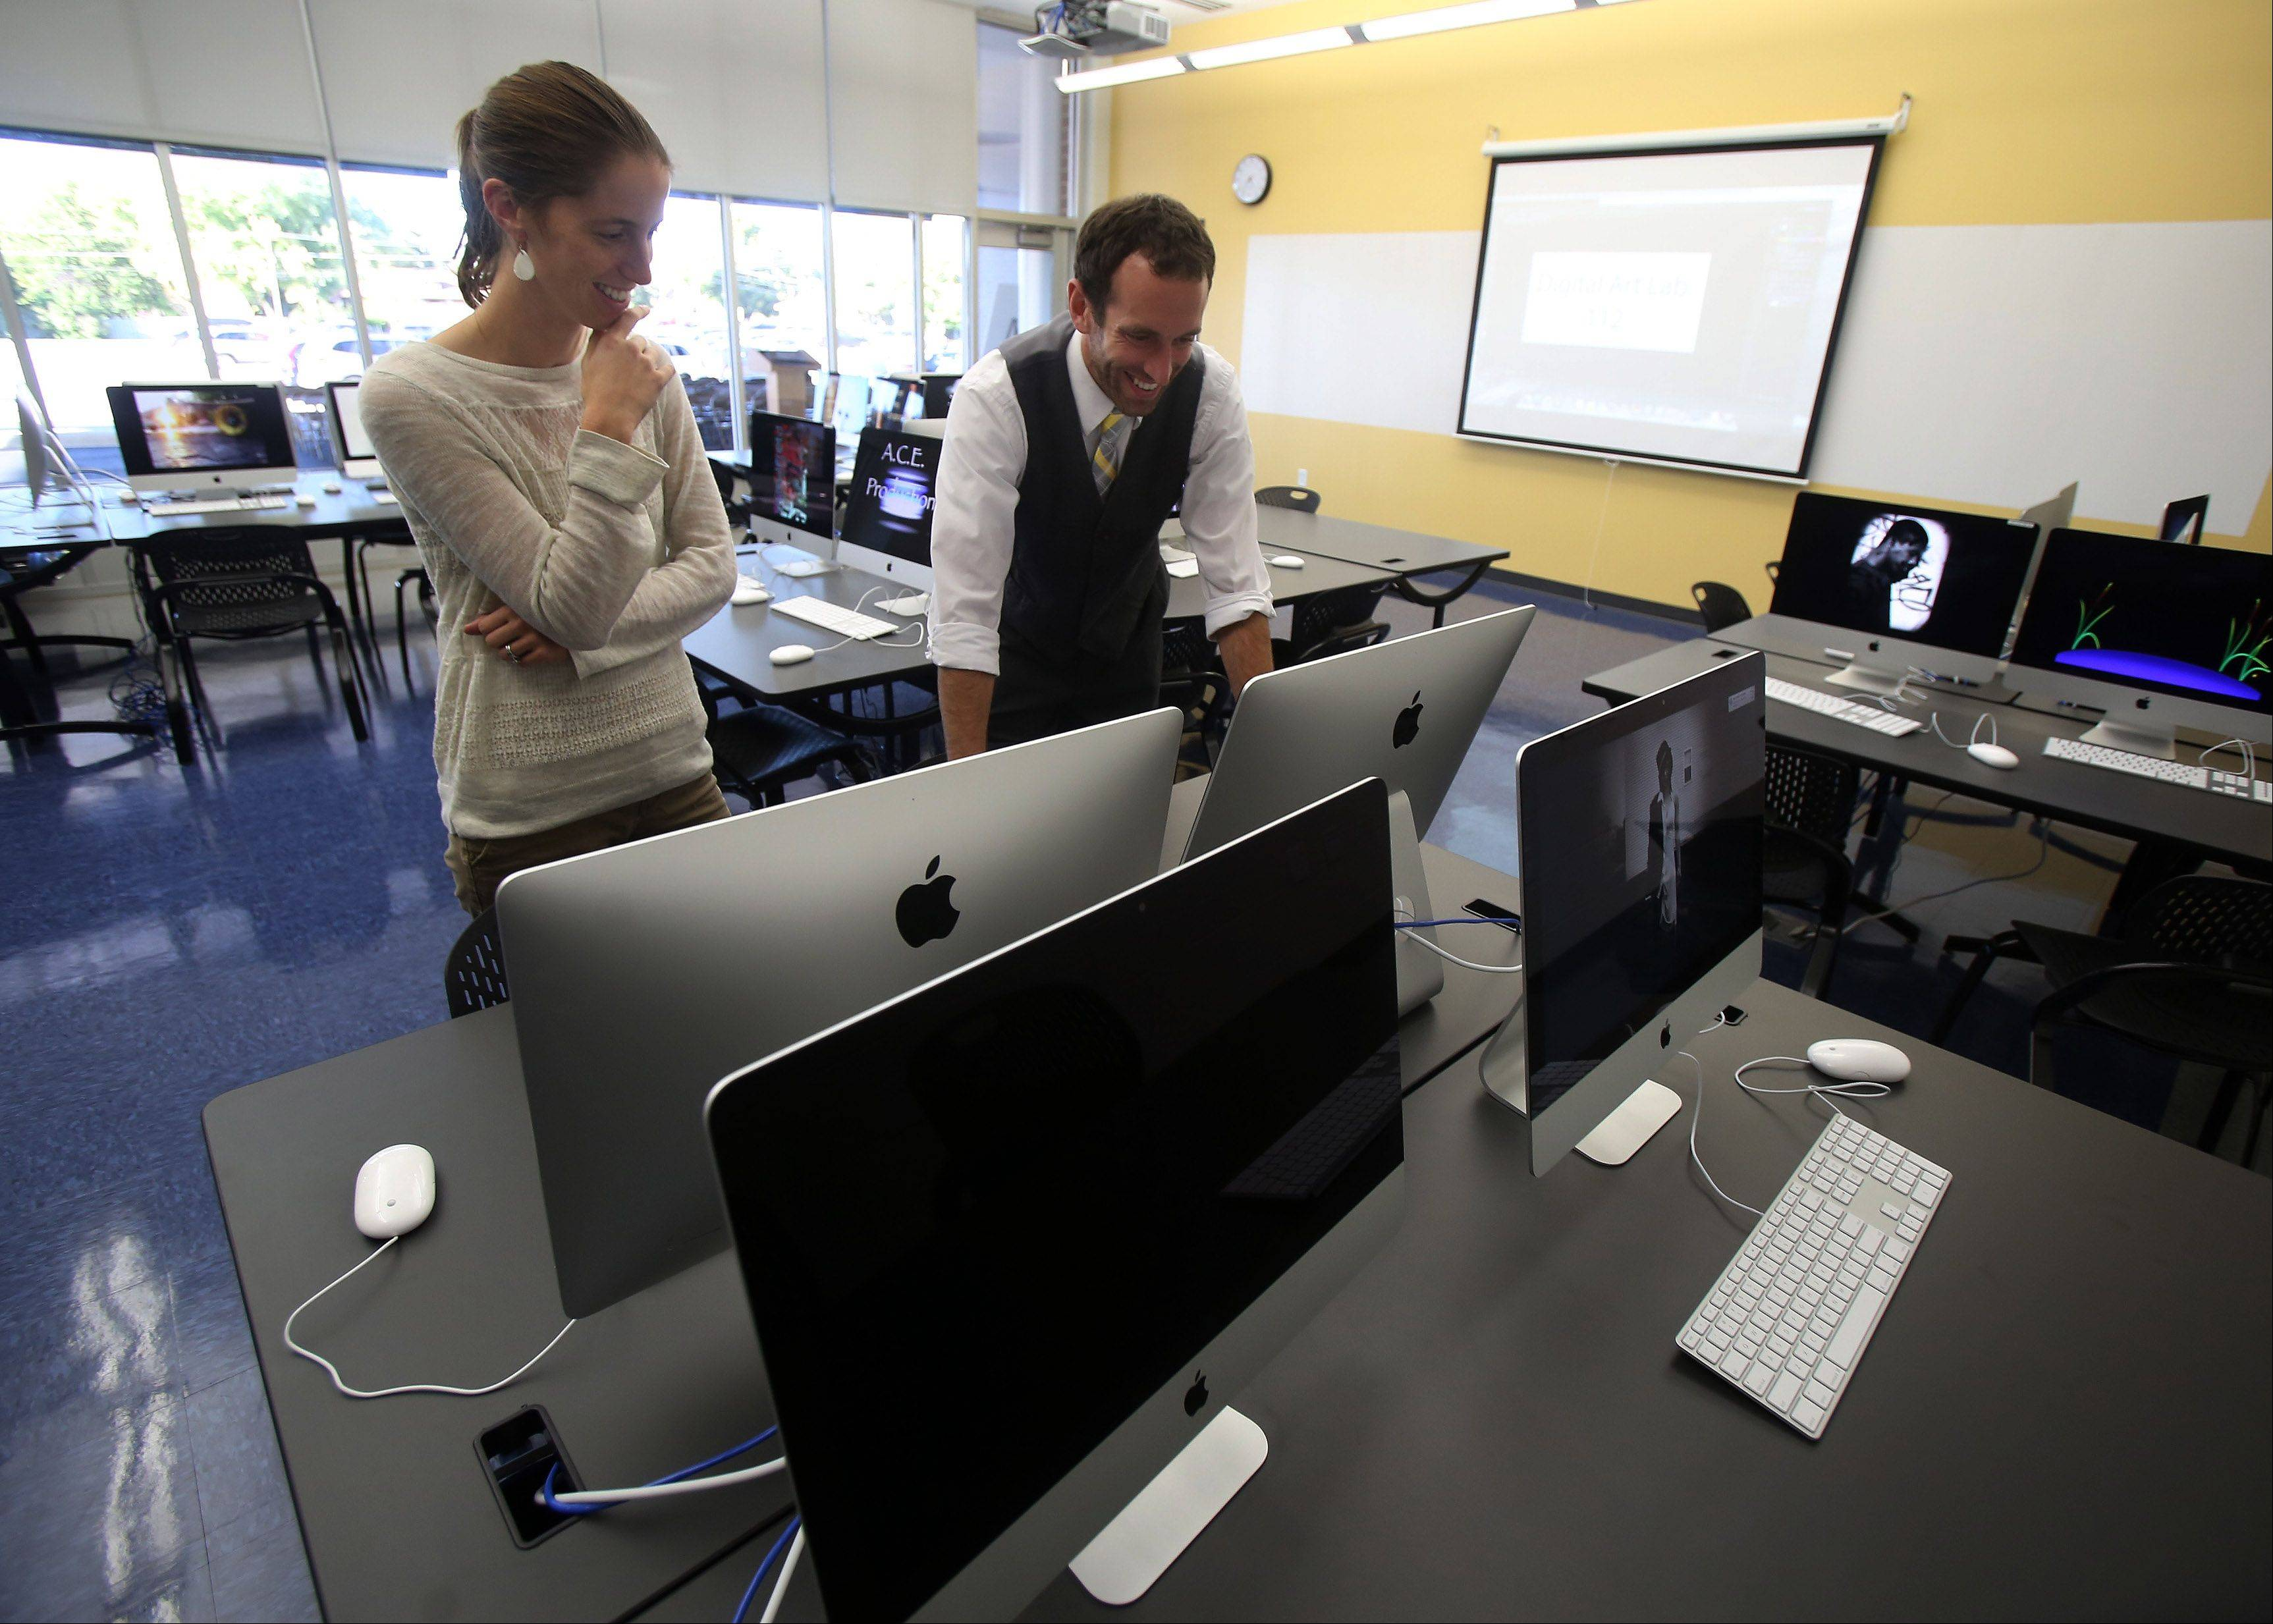 Technical teachers Carole McCulley and Brett Heimstead work with the new computers in the new digital lab during a dedication ceremony for the new addition at Warren High School — O'Plaine Campus Tuesday in Gurnee. The addition includes 10 new science classrooms, a digital lab classroom, meeting rooms and teacher offices.